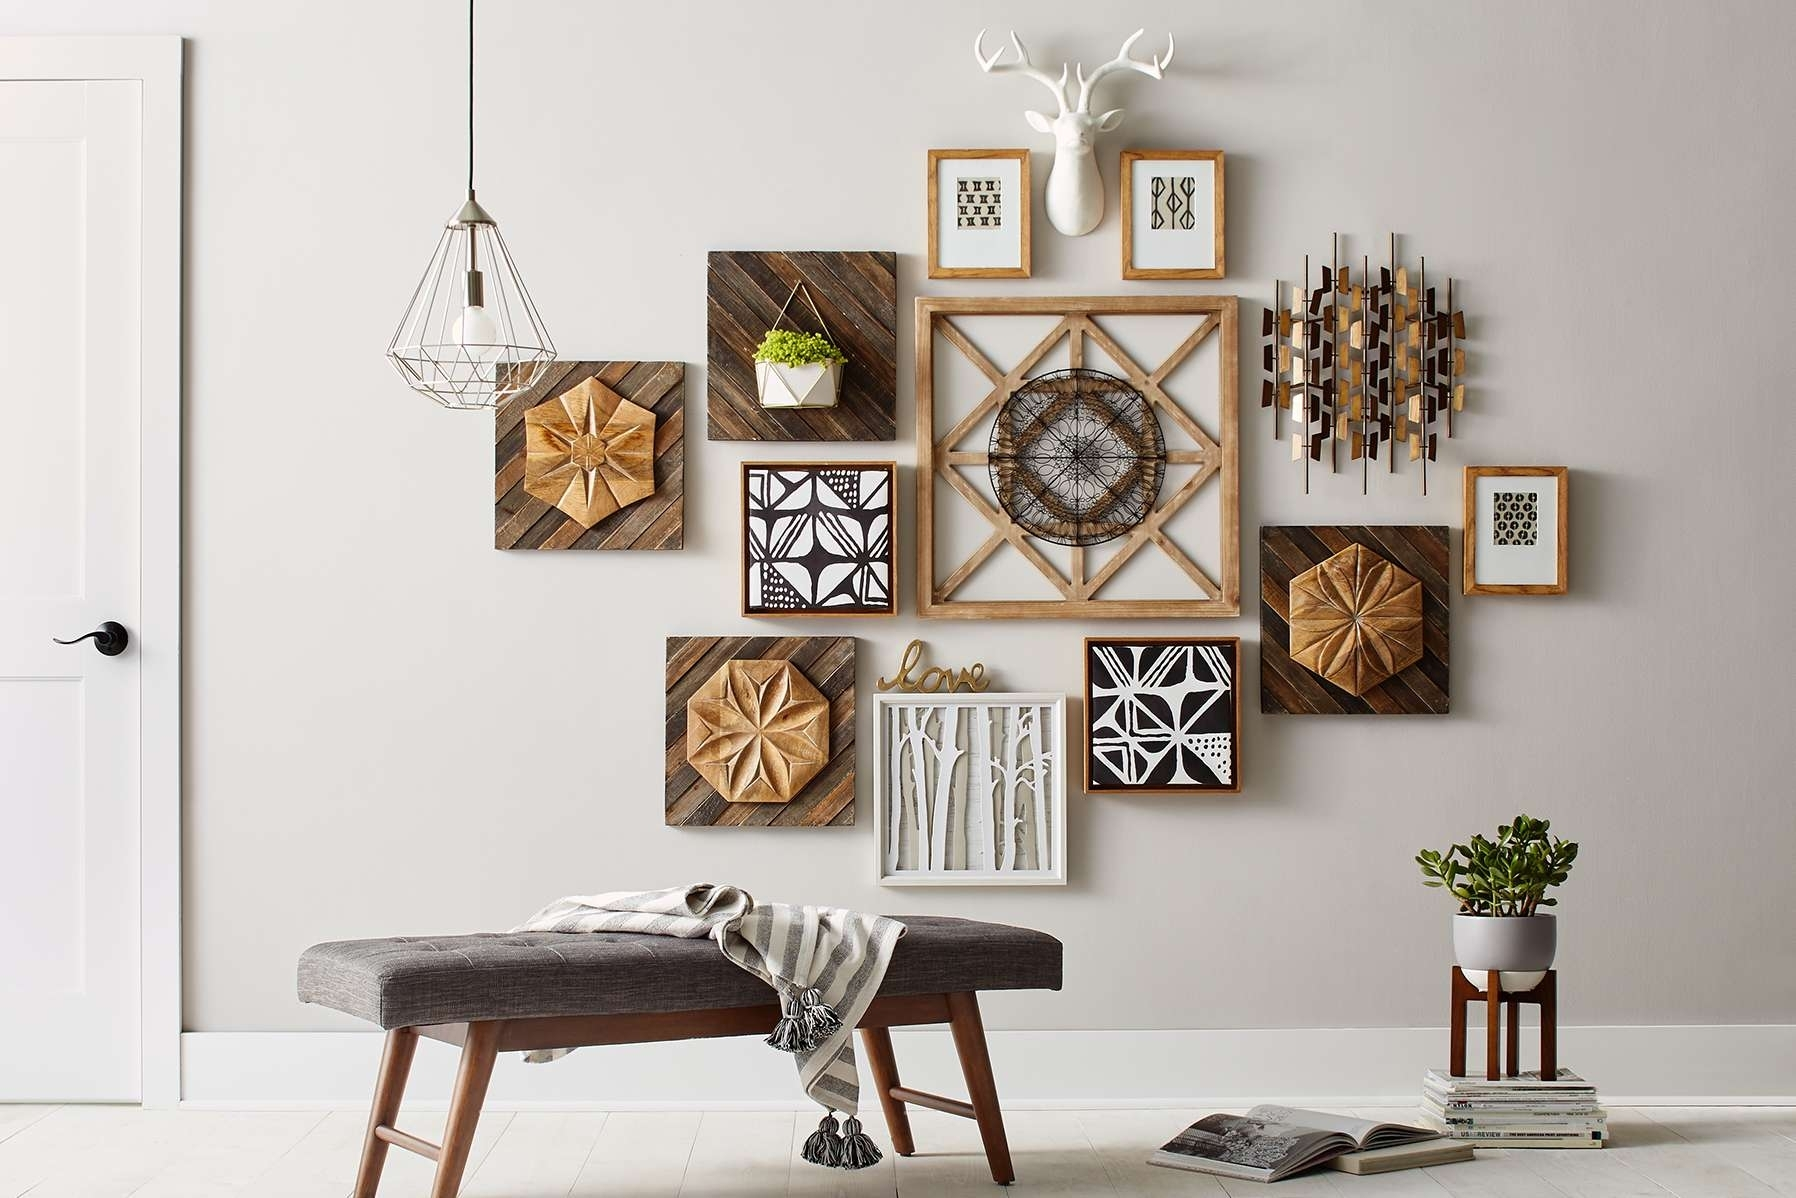 Wall Decor : Big Wall Art White Wall Decor Home Wall Decor Wood Throughout Most Recently Released Modern Wall Accents (View 4 of 15)